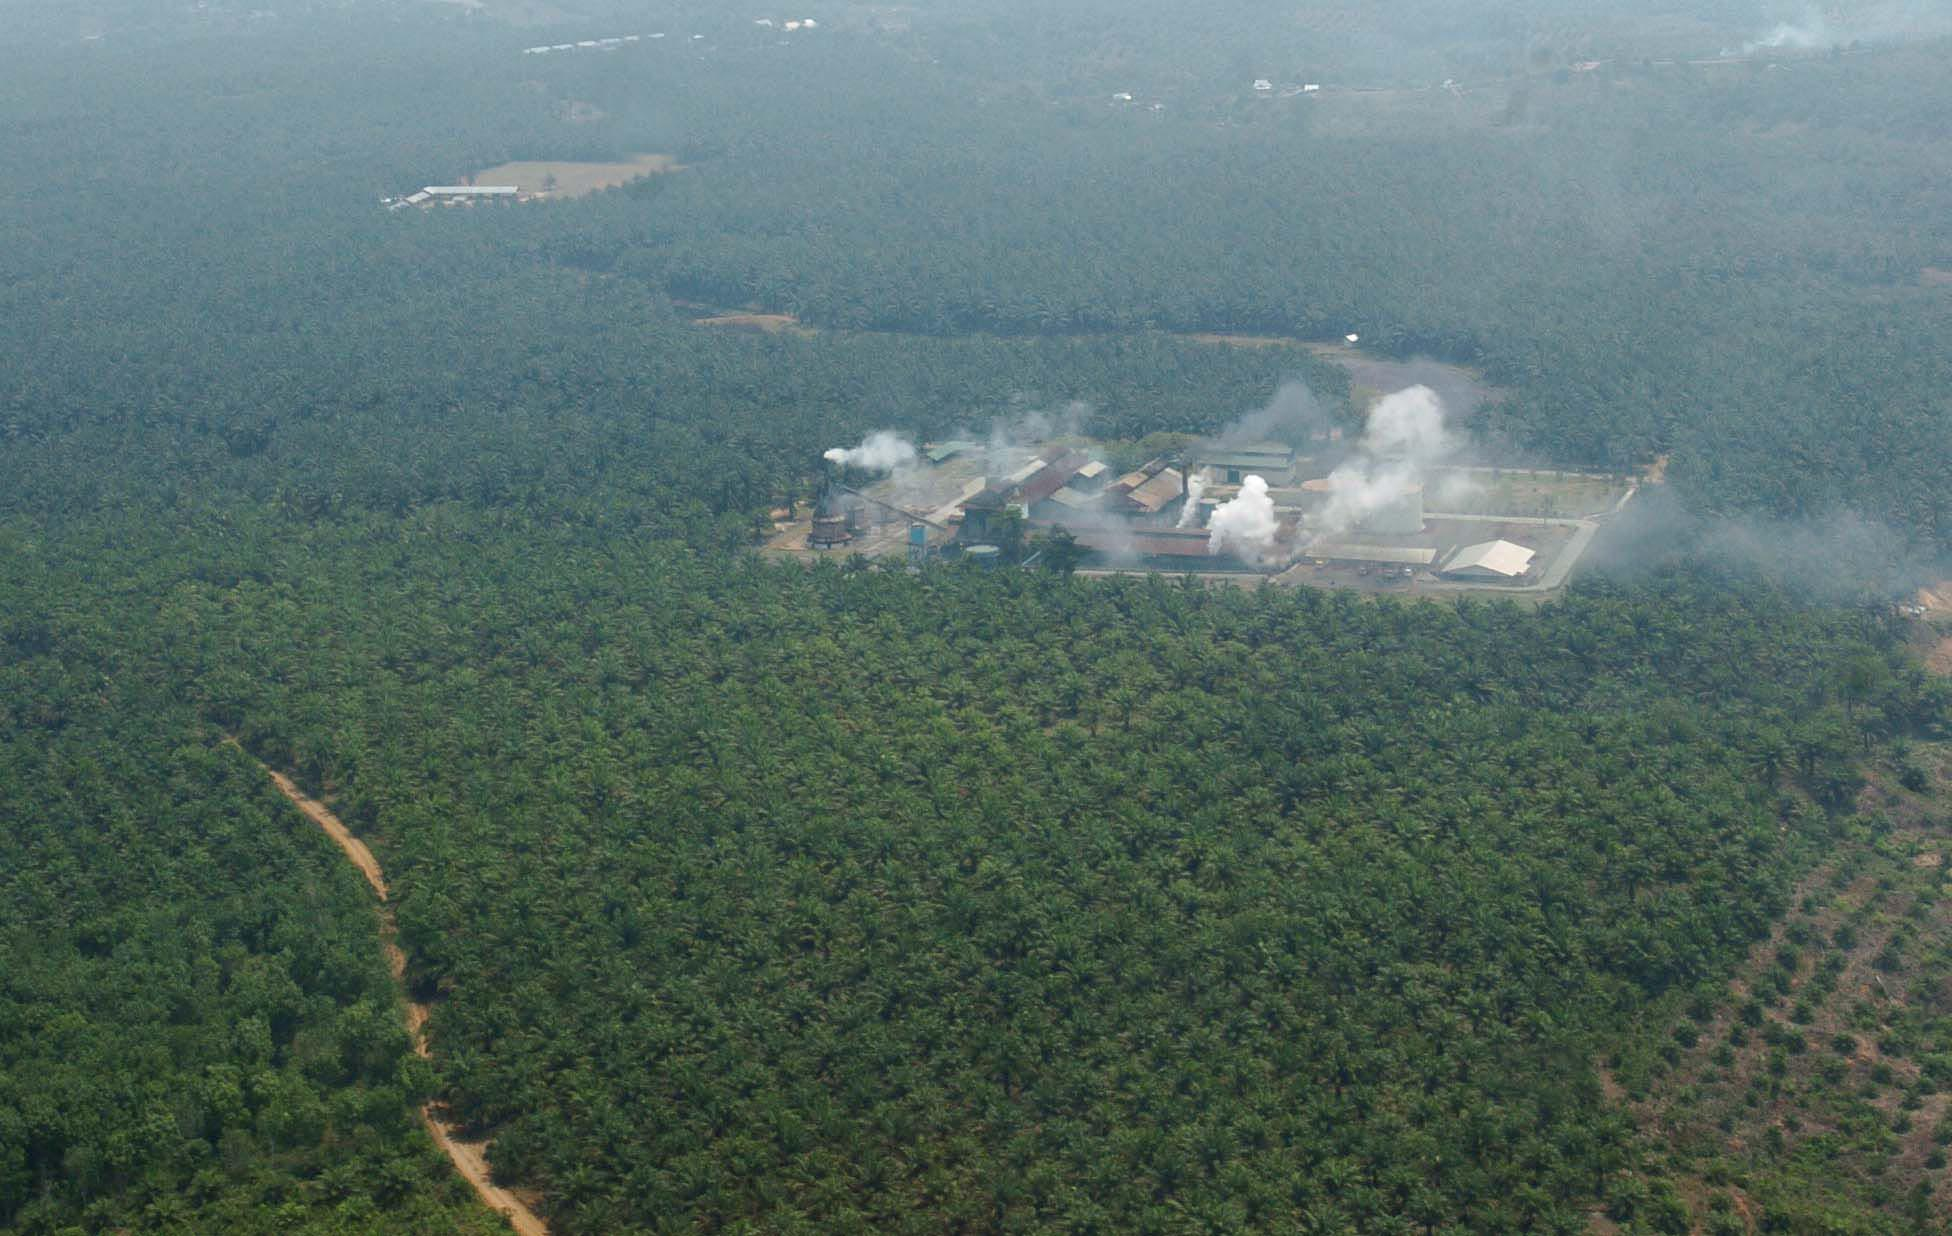 An aerial photograph of the Crude Palm Oil (CPO) factoryin Muko-Muko Regency, Bengkulu Province, Sumatra Island. Many communities throughout Indonesia are losing their land to companies seeking to profit from the booming palm oil industry